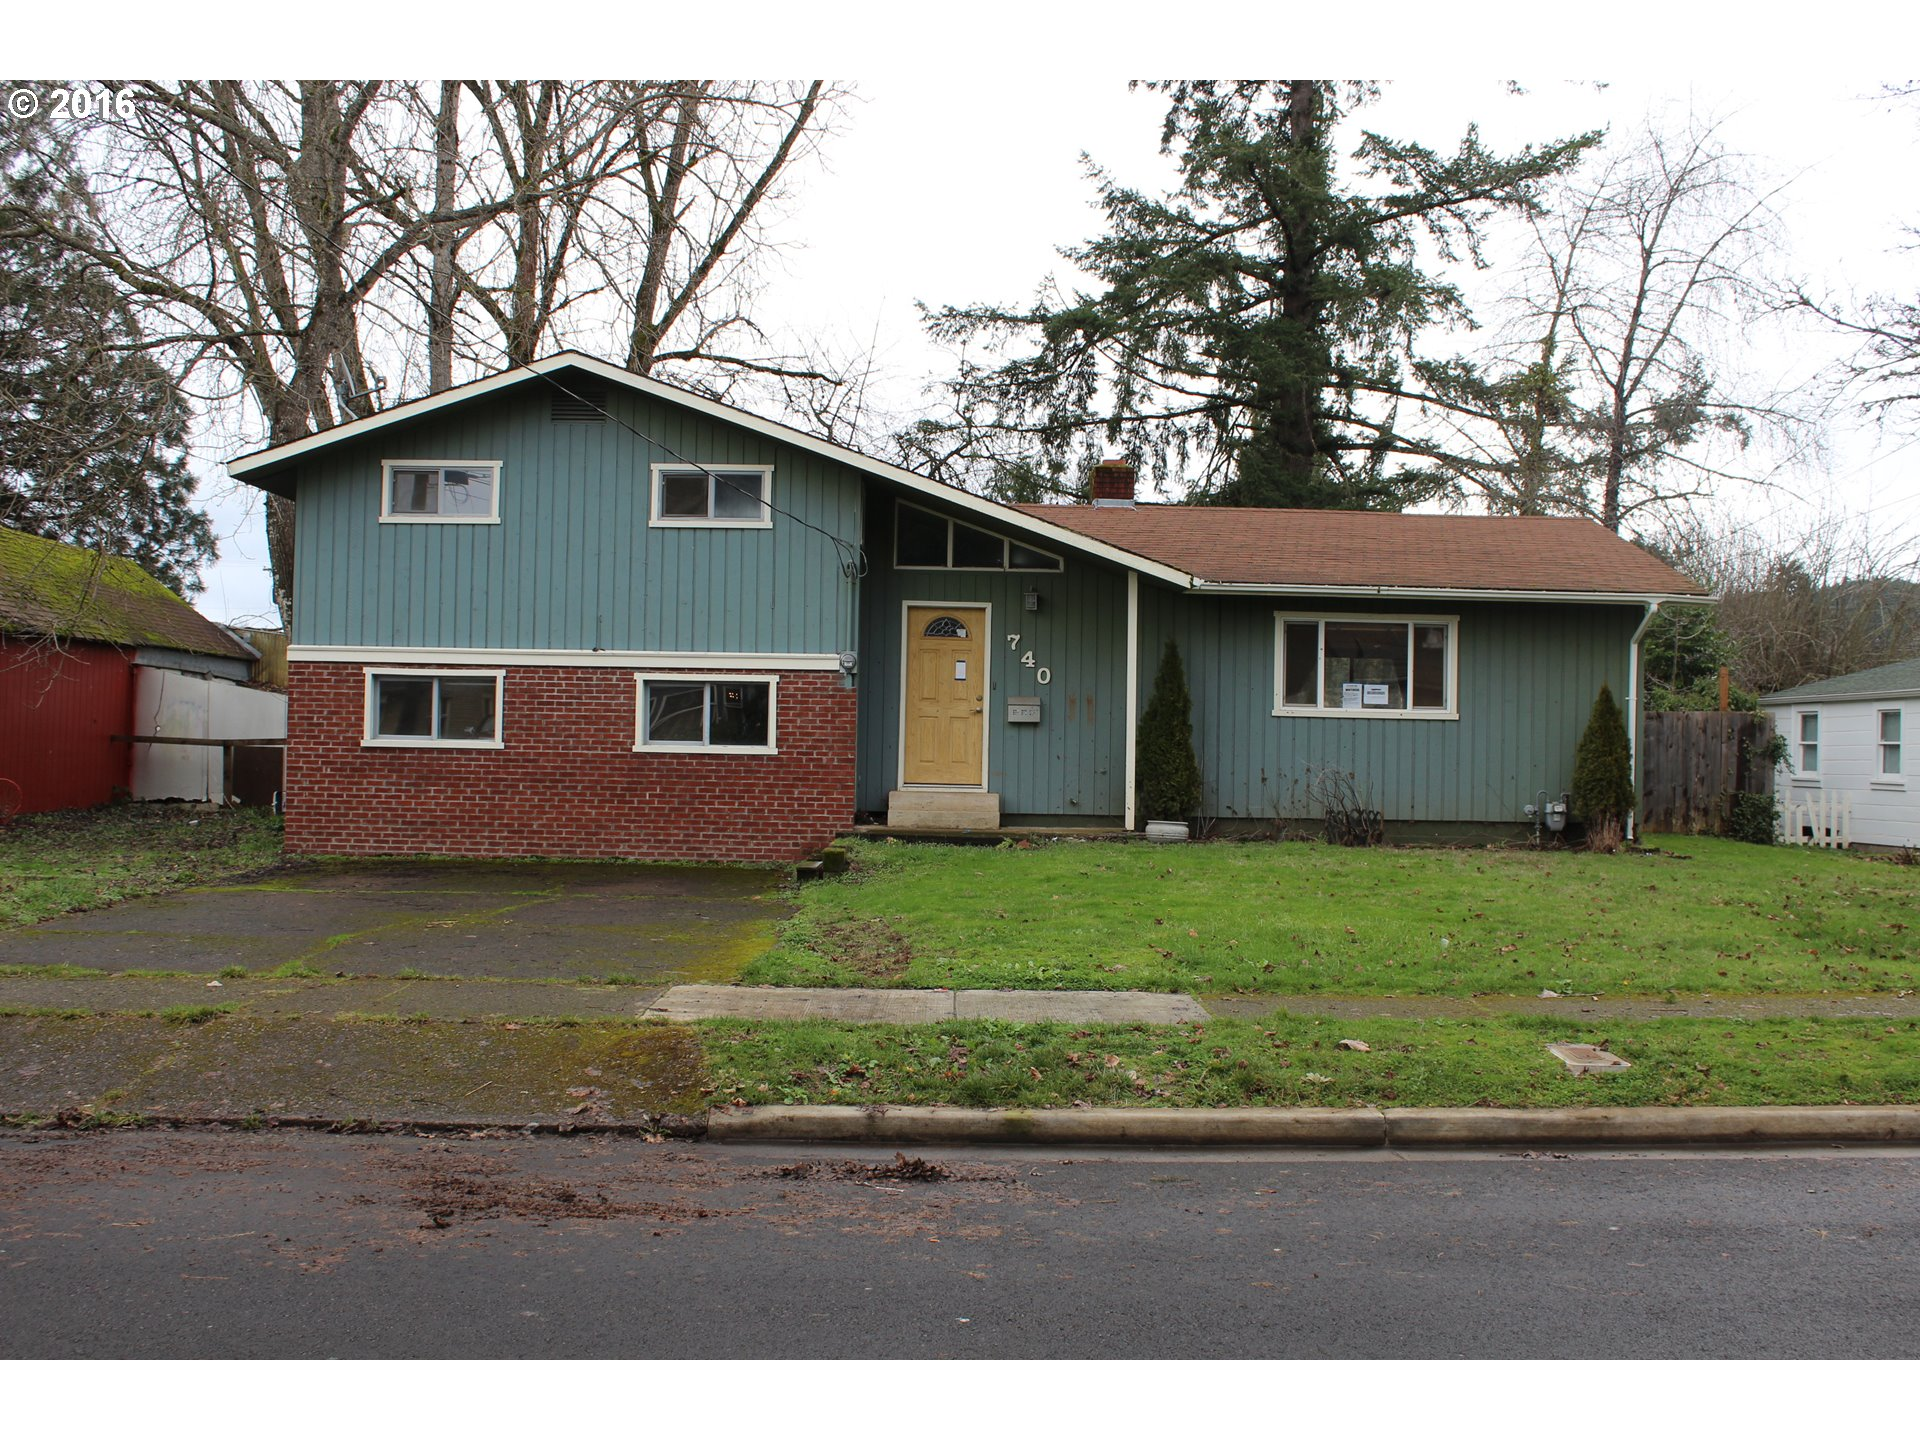 740 S 3rd St, Cottage Grove, OR